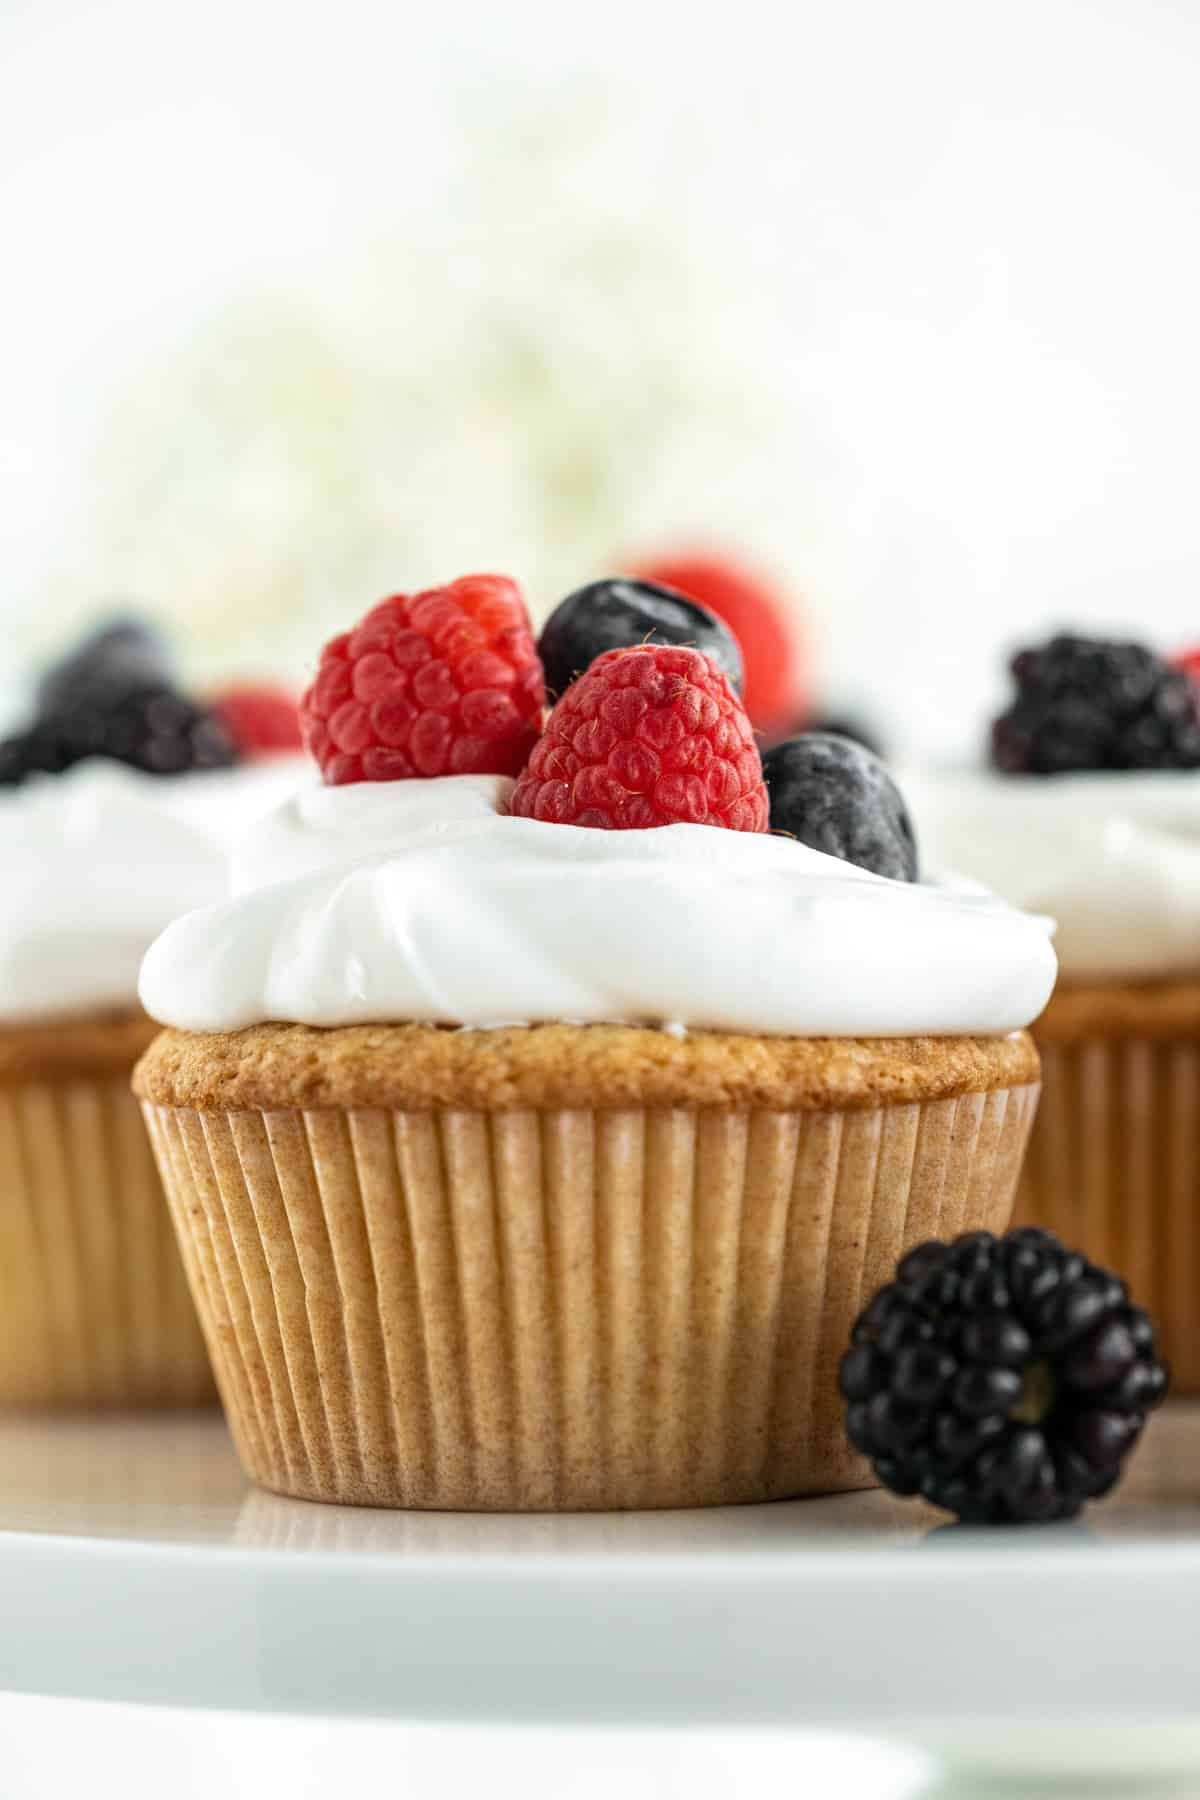 One cupcake topped with whipped cream and berries